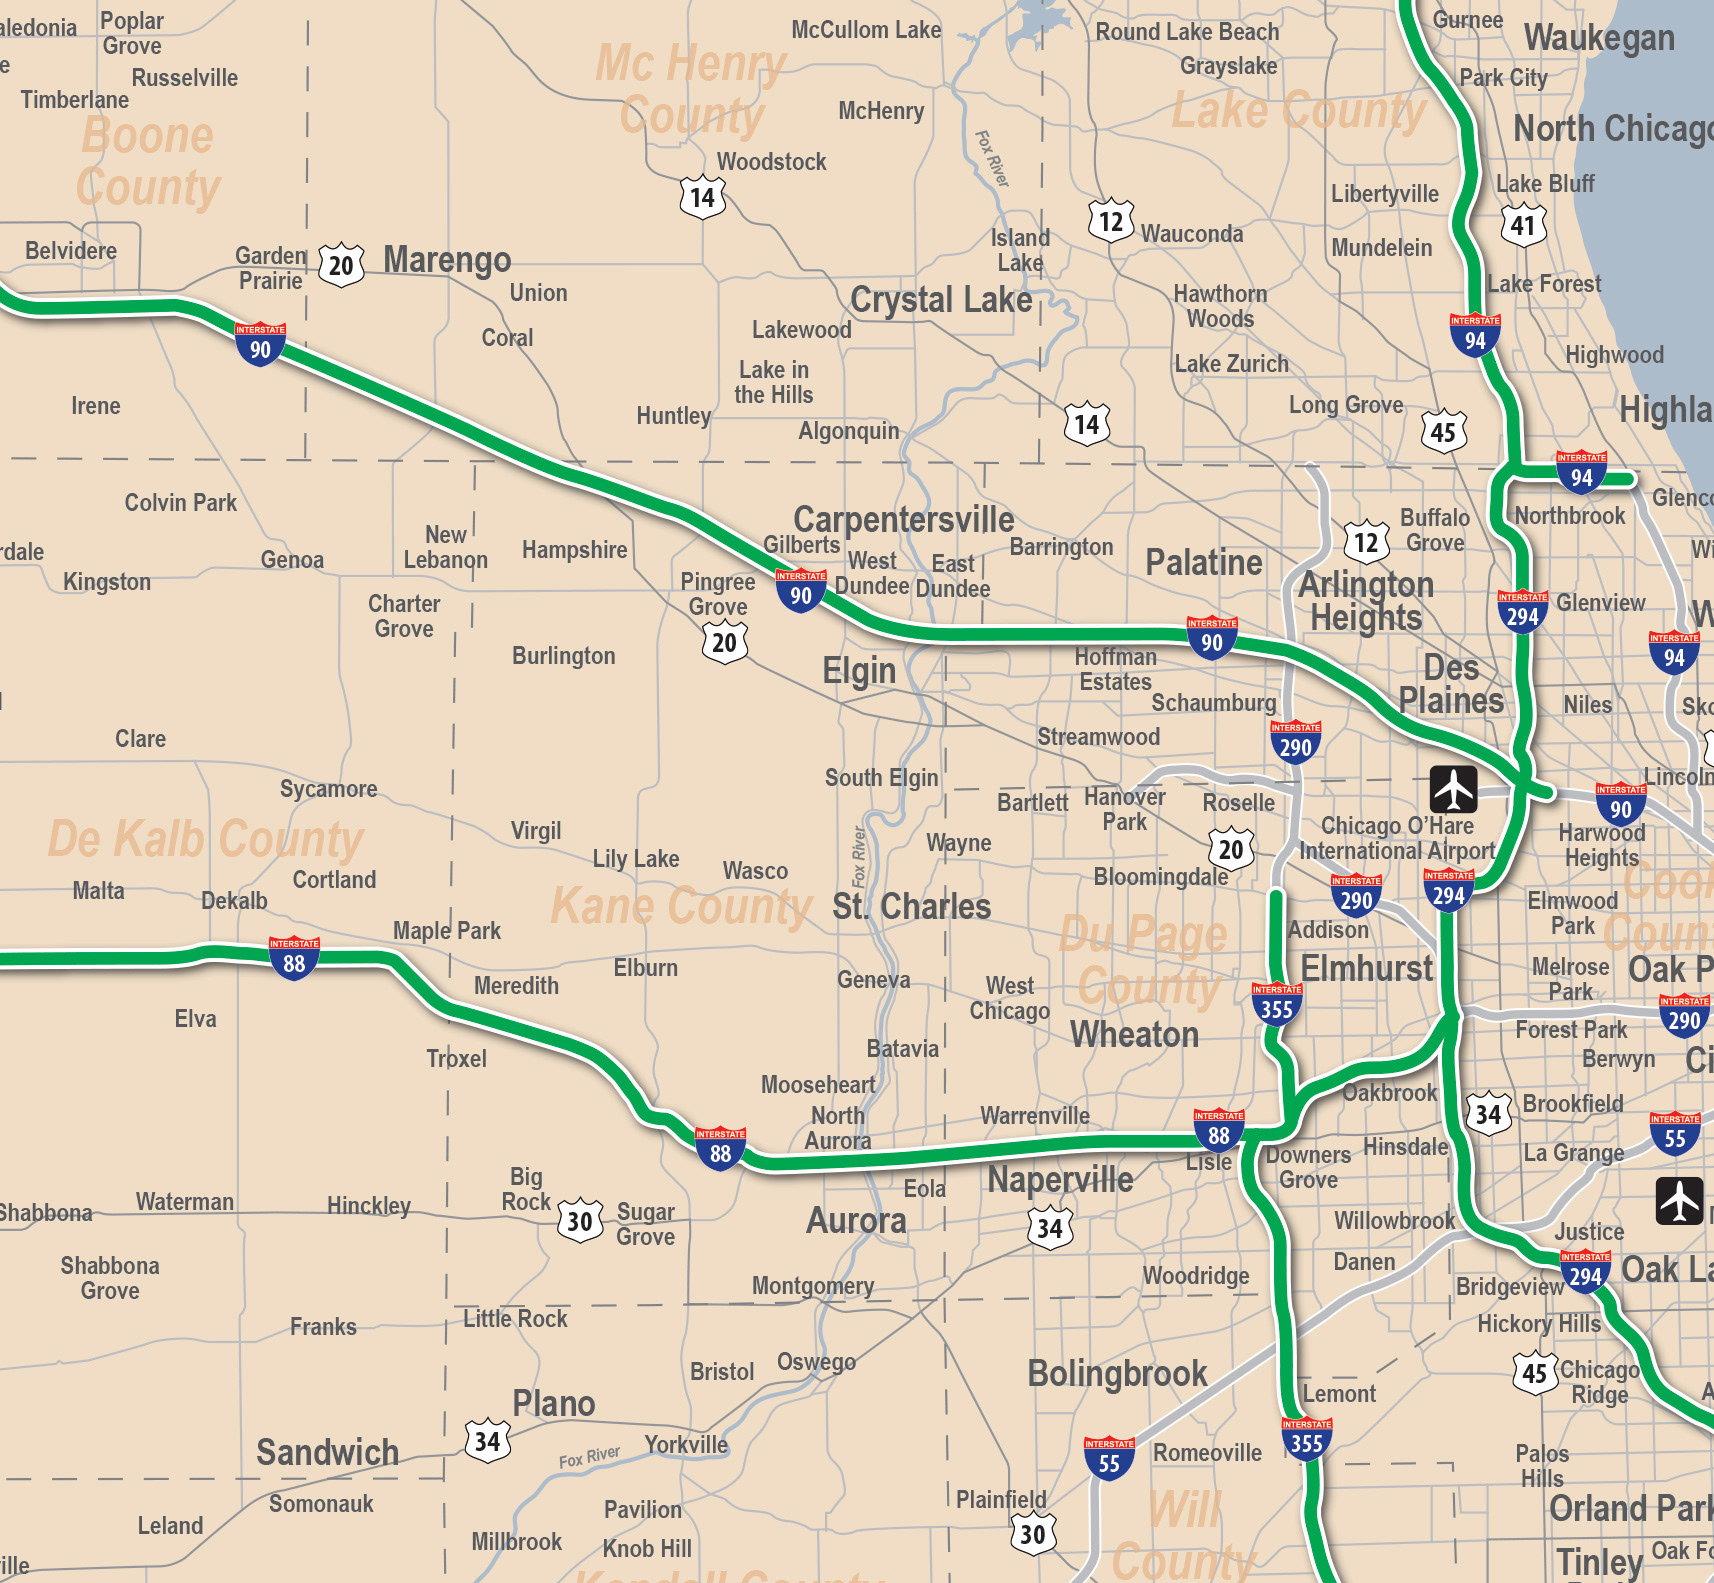 Tollway Illinois Map.Walter Afalla Illinois Tollway System Map For Rent A Toll